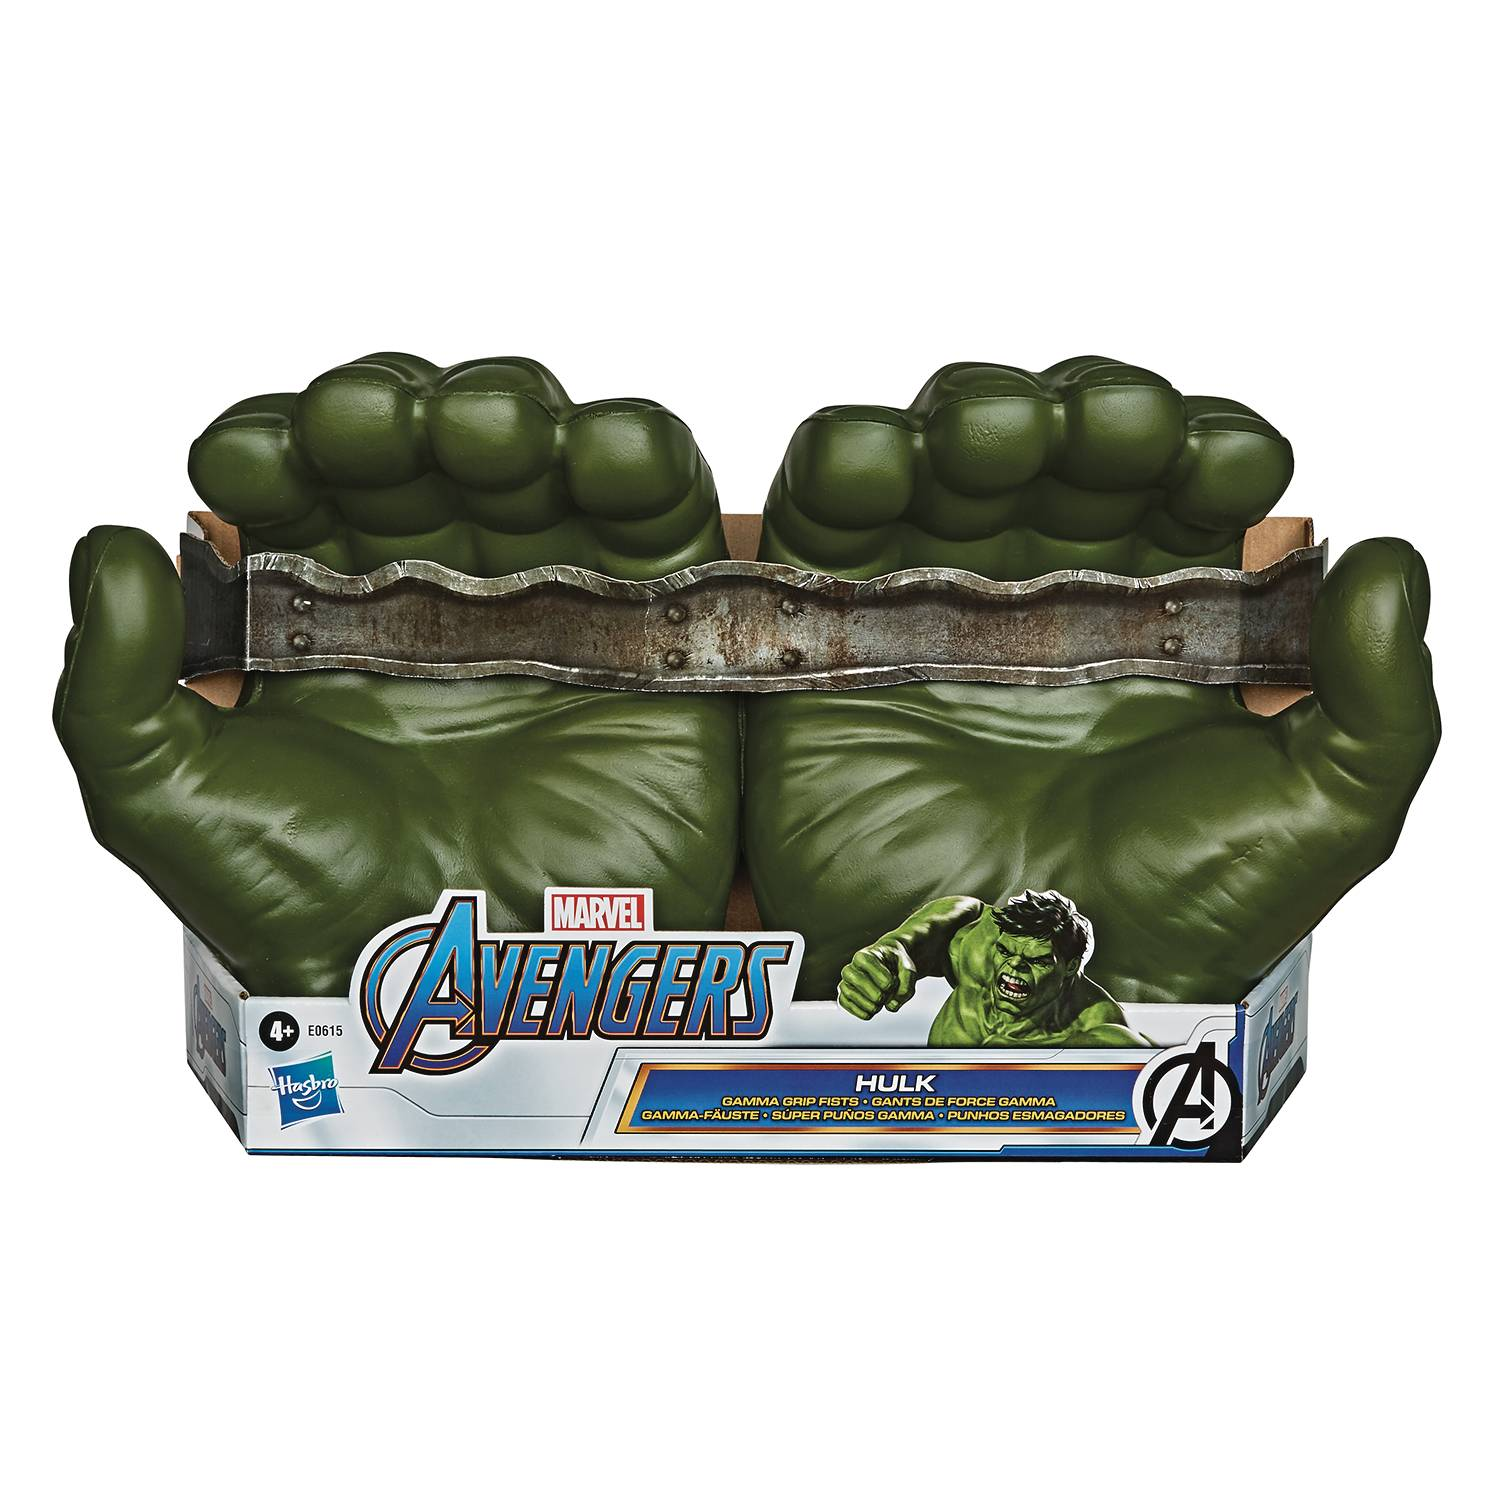 AVENGERS HULK GAMMA GRIP FISTS CS